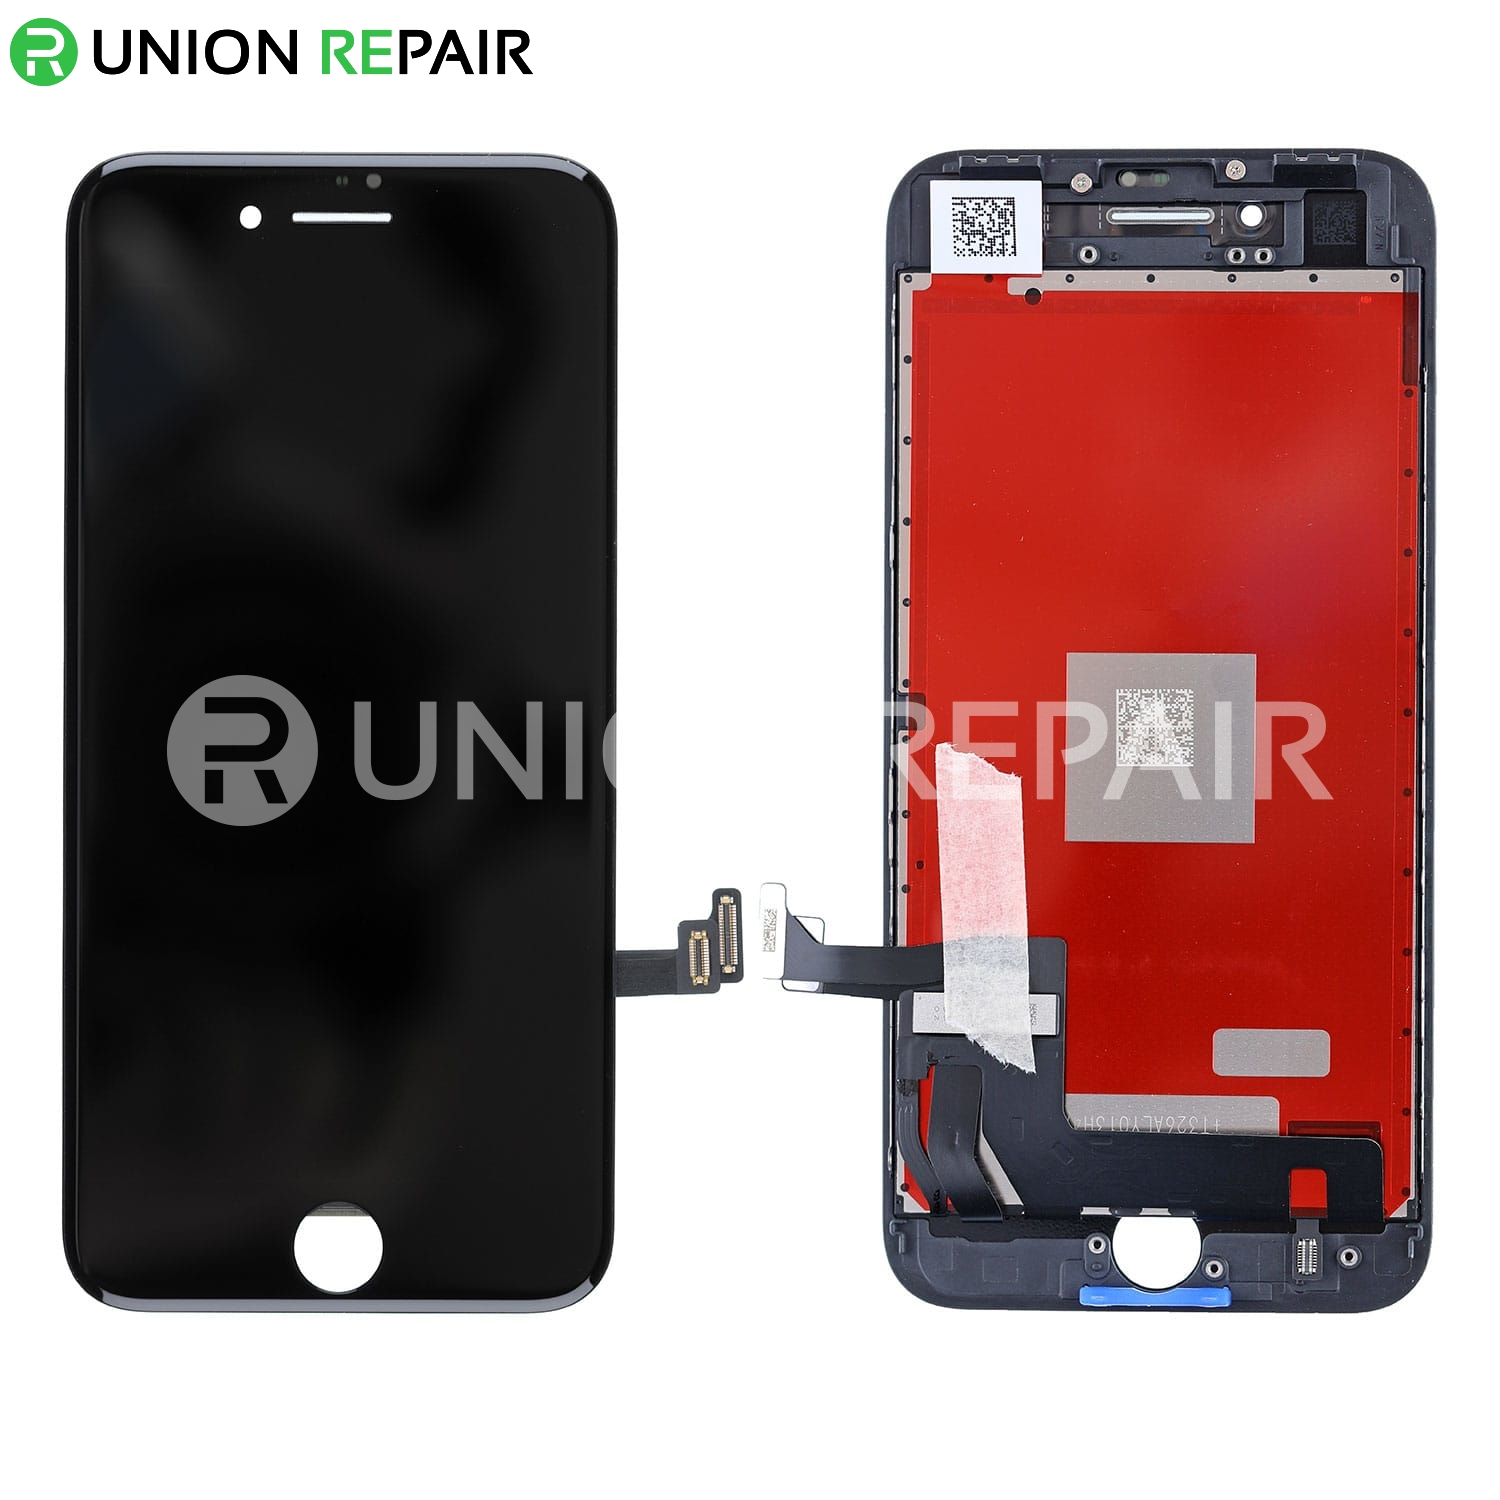 Iphone  Screen And Lcd Replacement